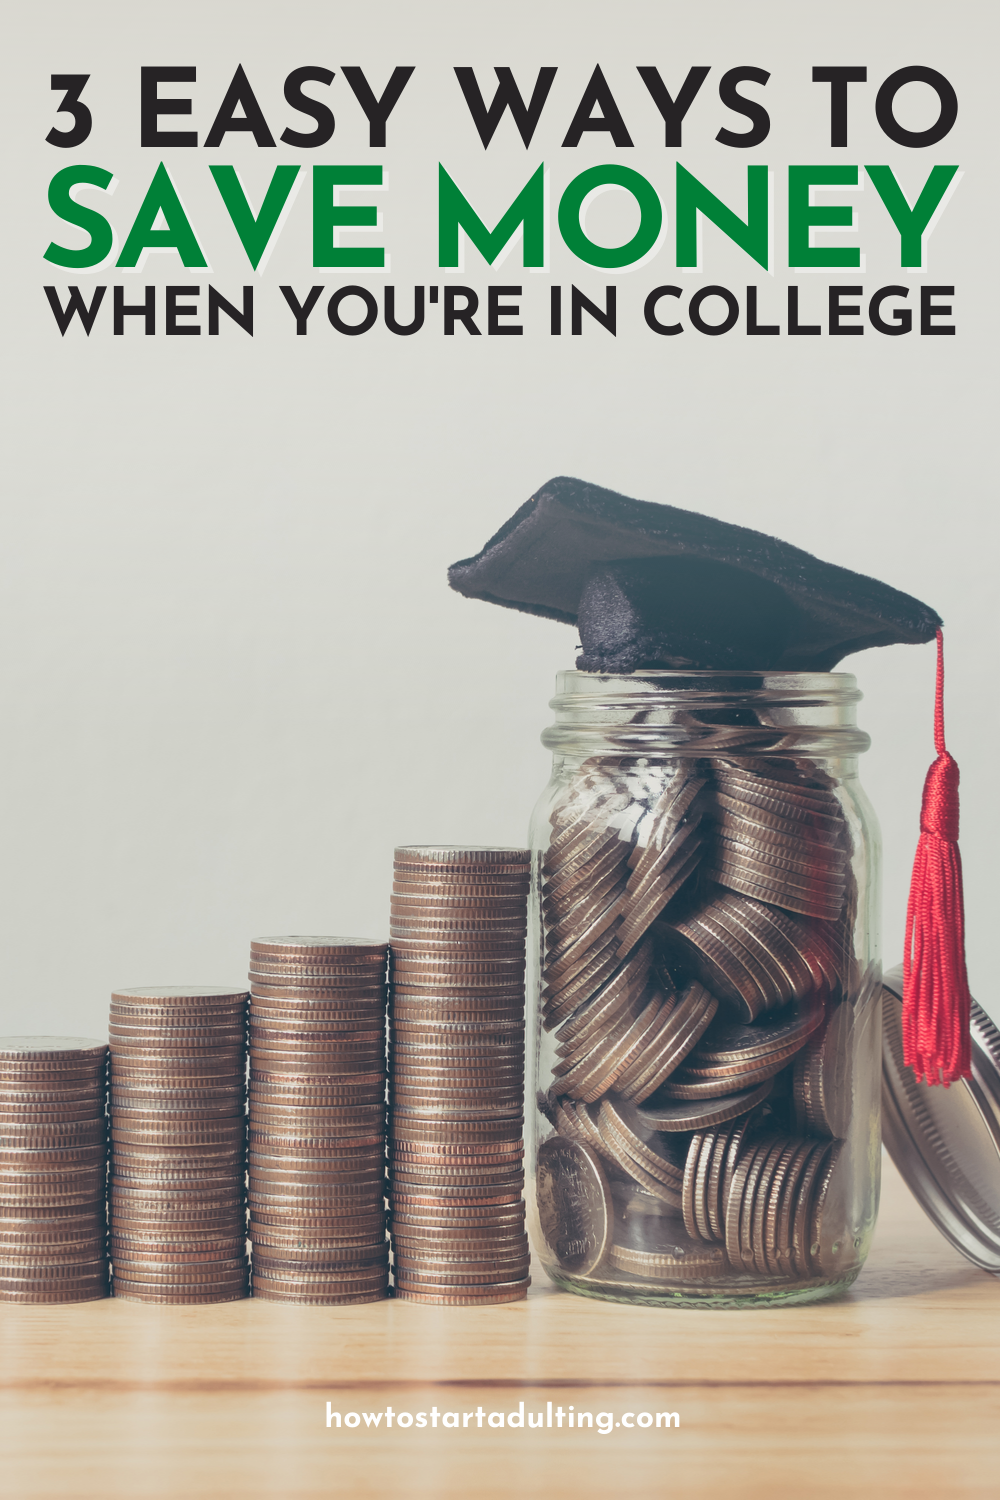 Easy Ways to Save Money When You're In College